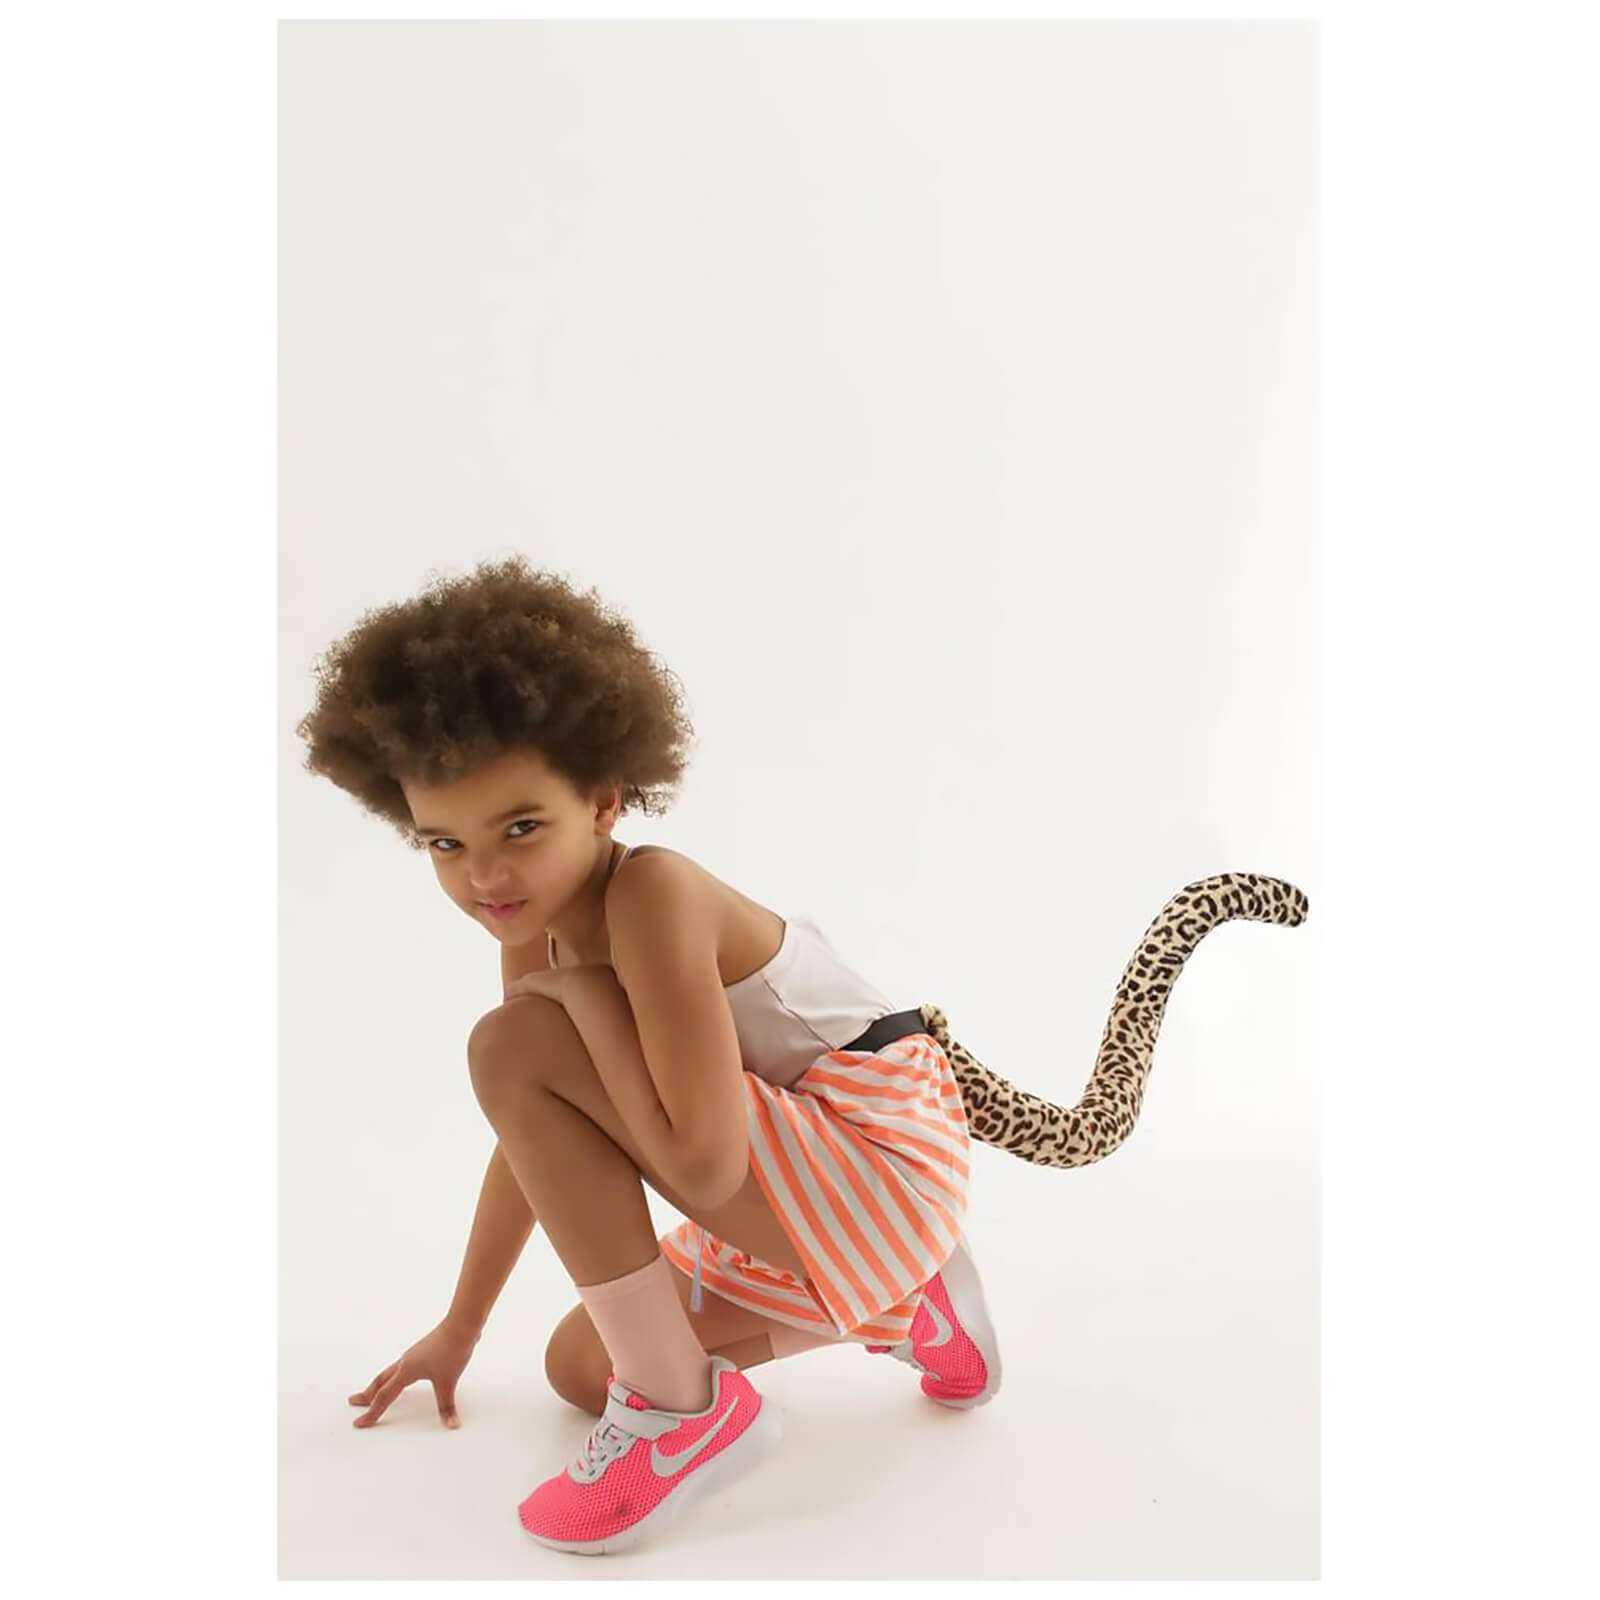 TellTails Wearable Leoping Leopard Tail for Kids